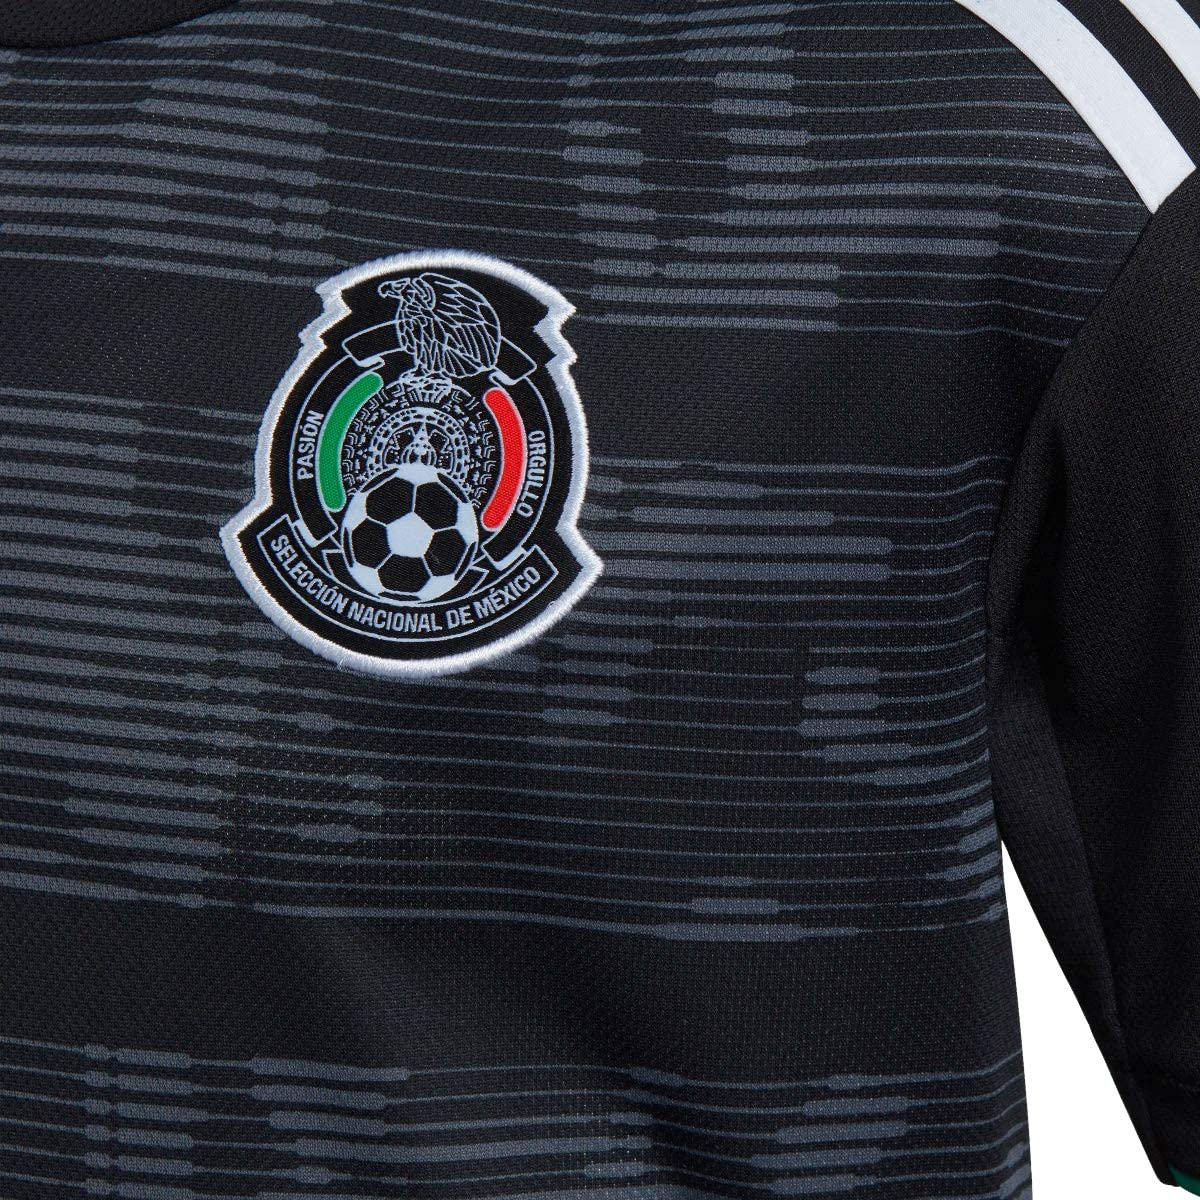 Amazon.com: adidas Youth Soccer Mexico Home Jersey : Sports & Outdoors